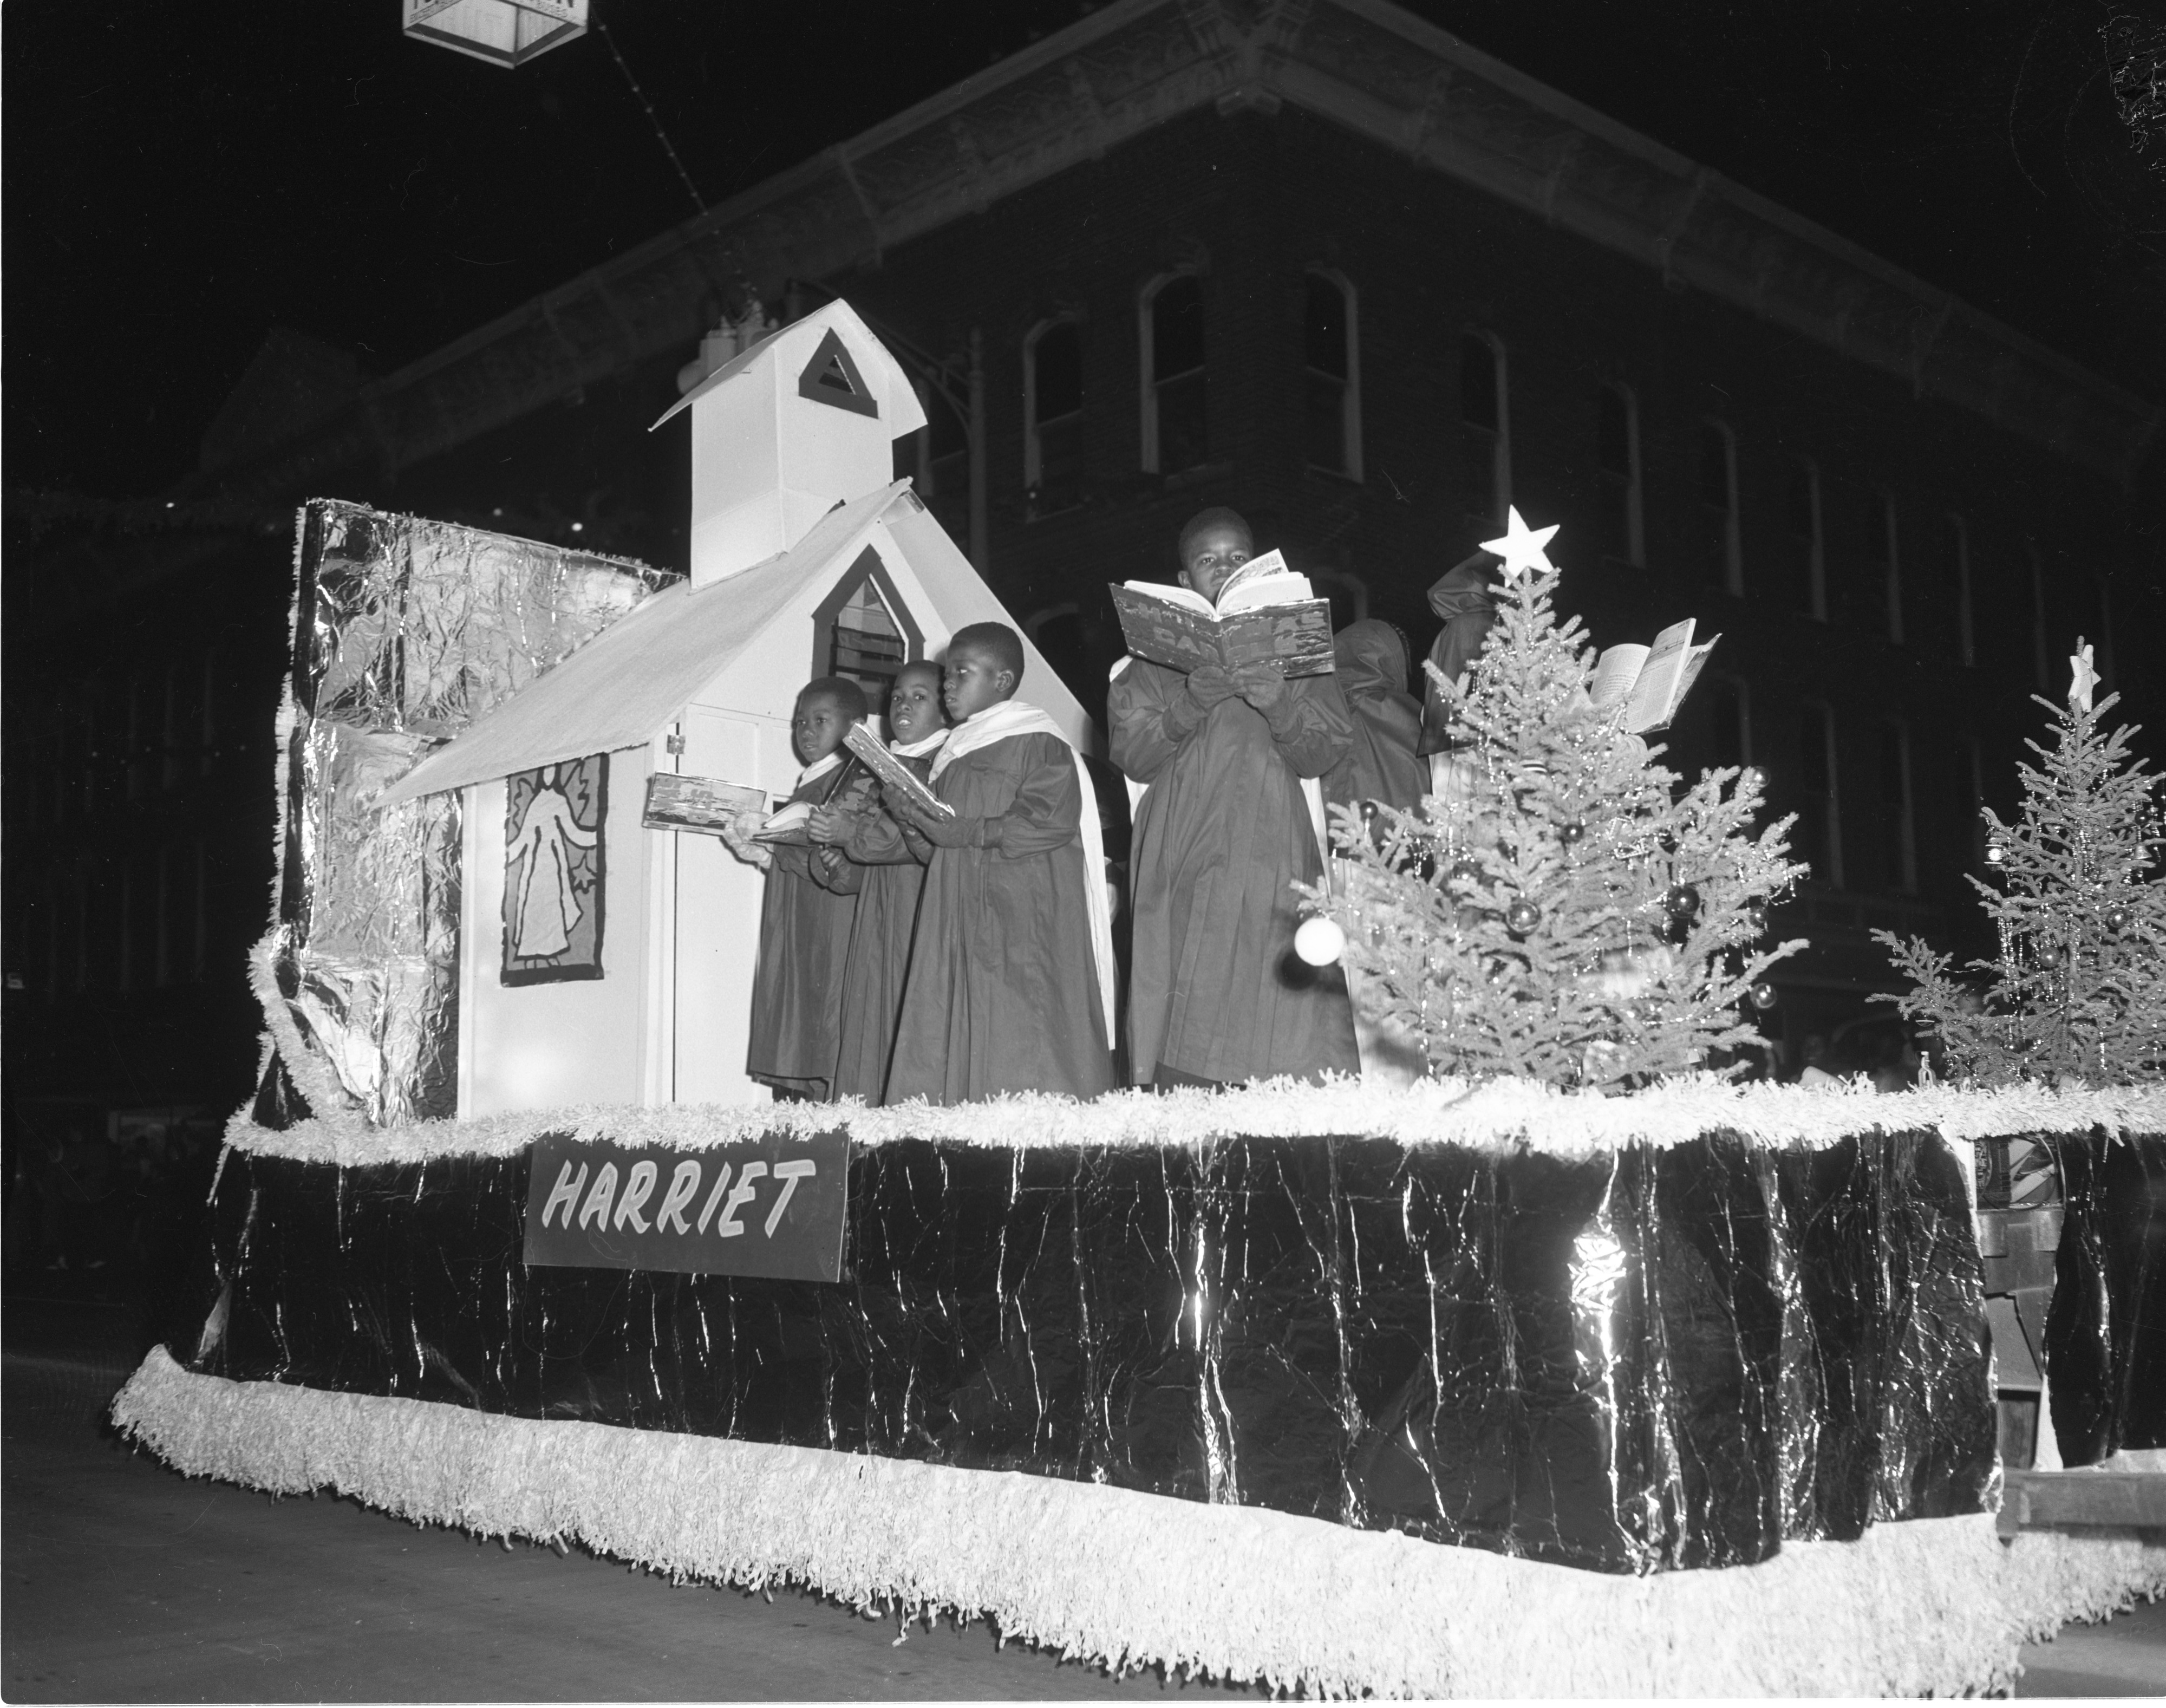 Ypsilanti Christmas Parade - Harriet Elementary School Float, December 1954 image